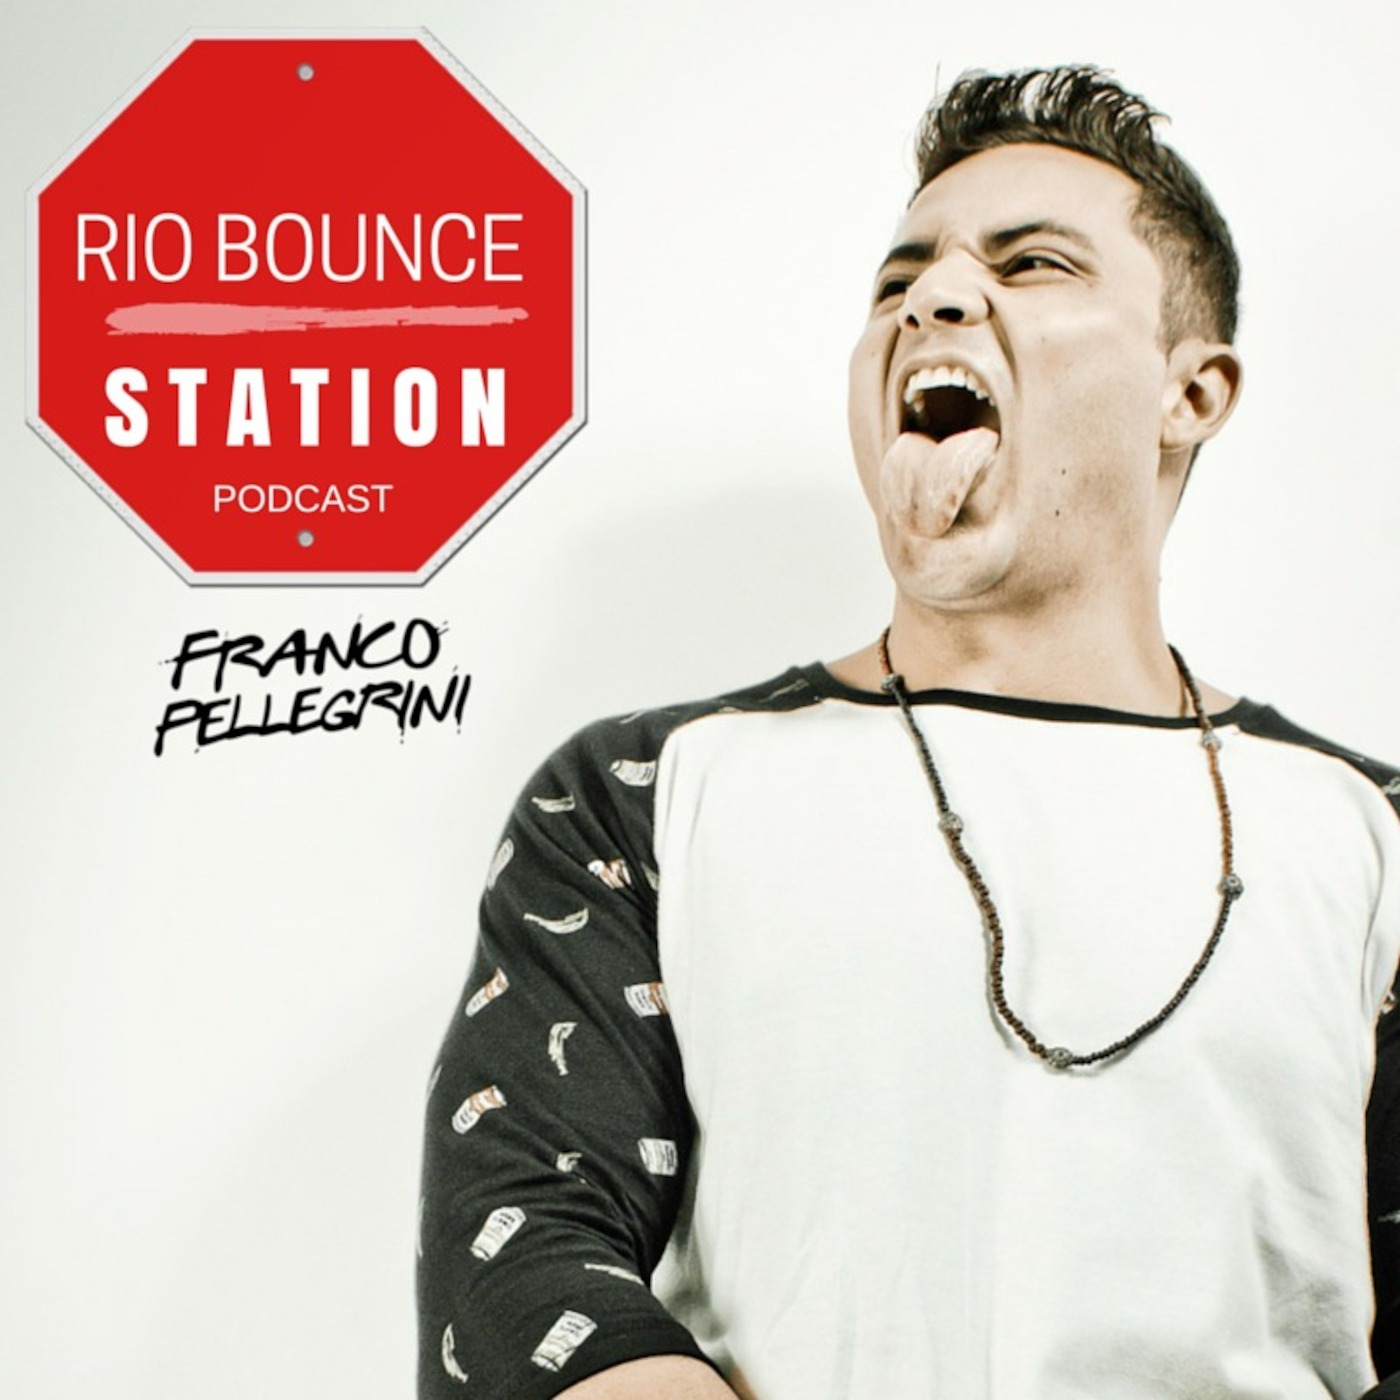 Rio Bounce Station